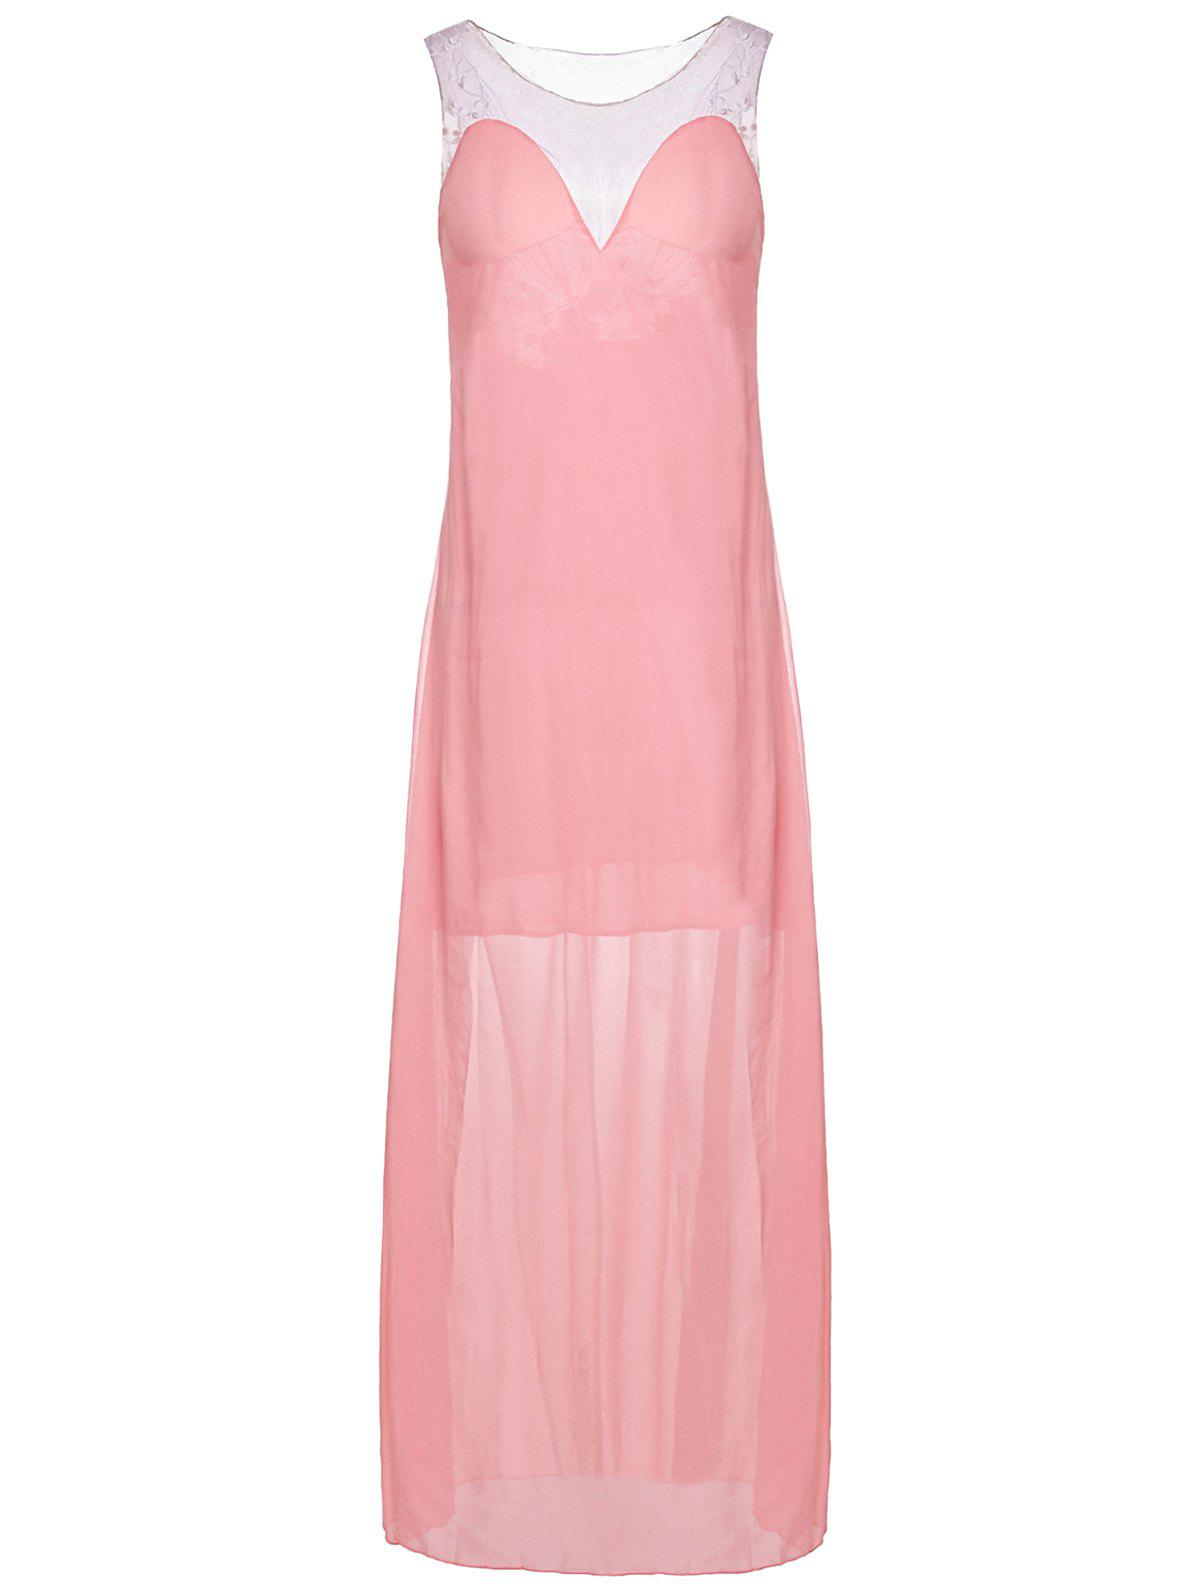 Sexy Plunging Neck Sleeveless Backless Spliced Women's Dress - PINK L